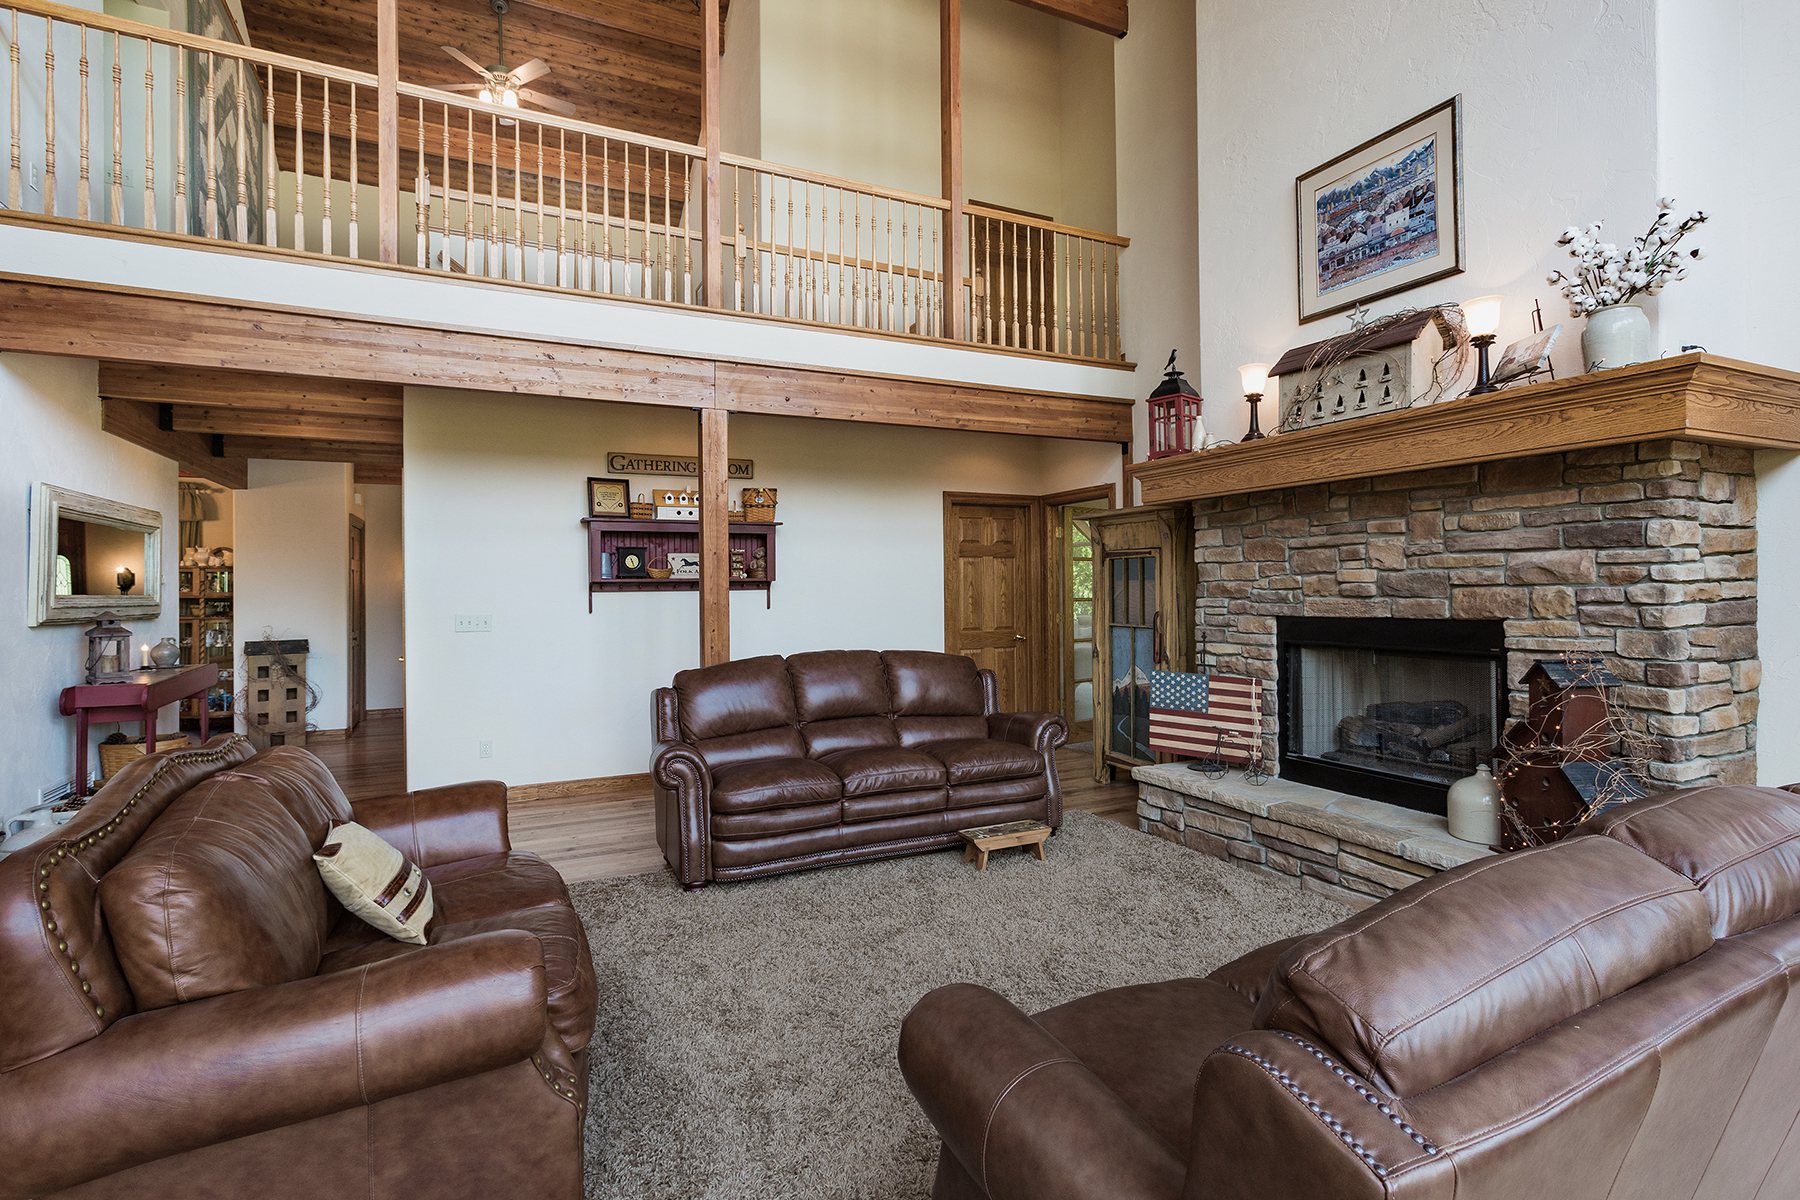 Additional photo for property listing at 707 Oak Drive 707 Oak Drive Durango, Colorado 81301 United States